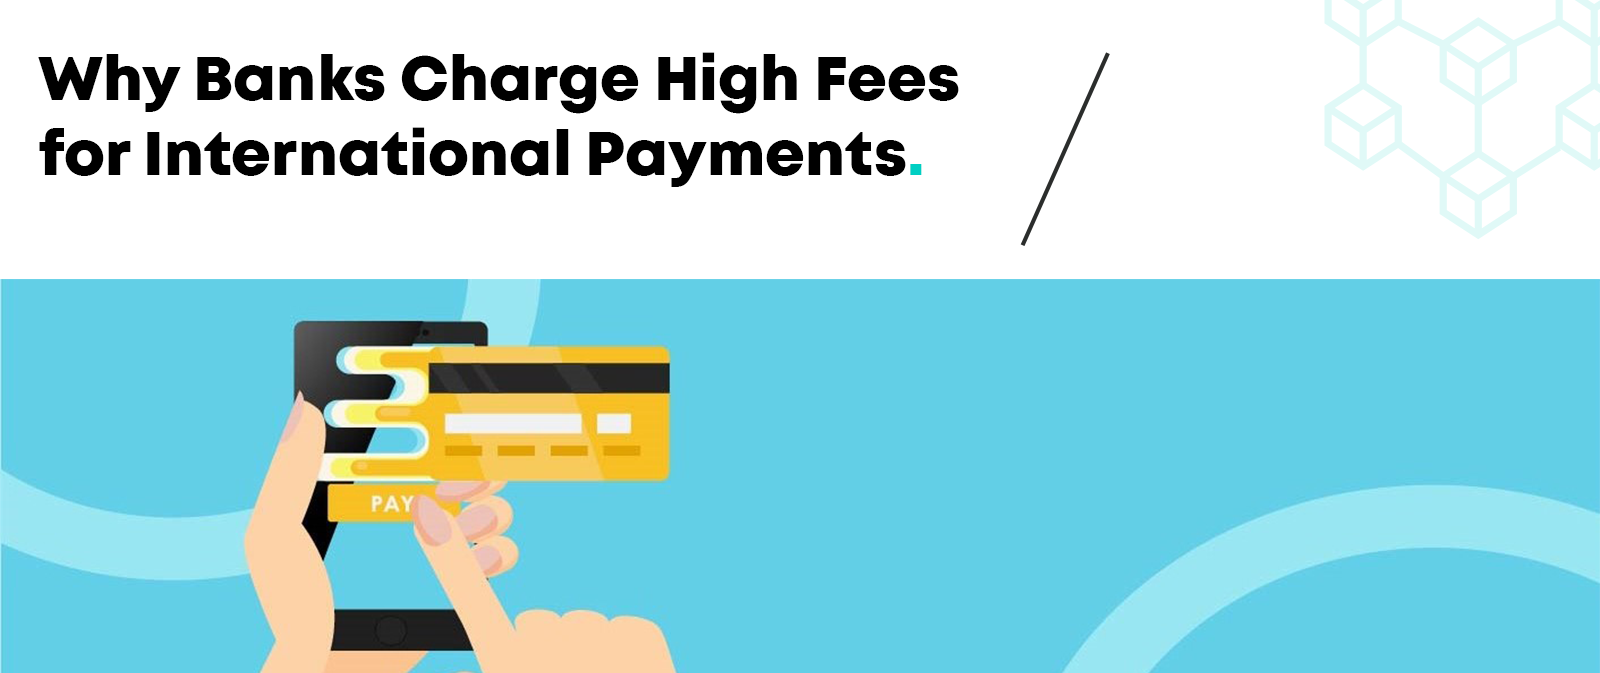 DTransfer Blog - Why Banks Charge High Commissions for International Payments